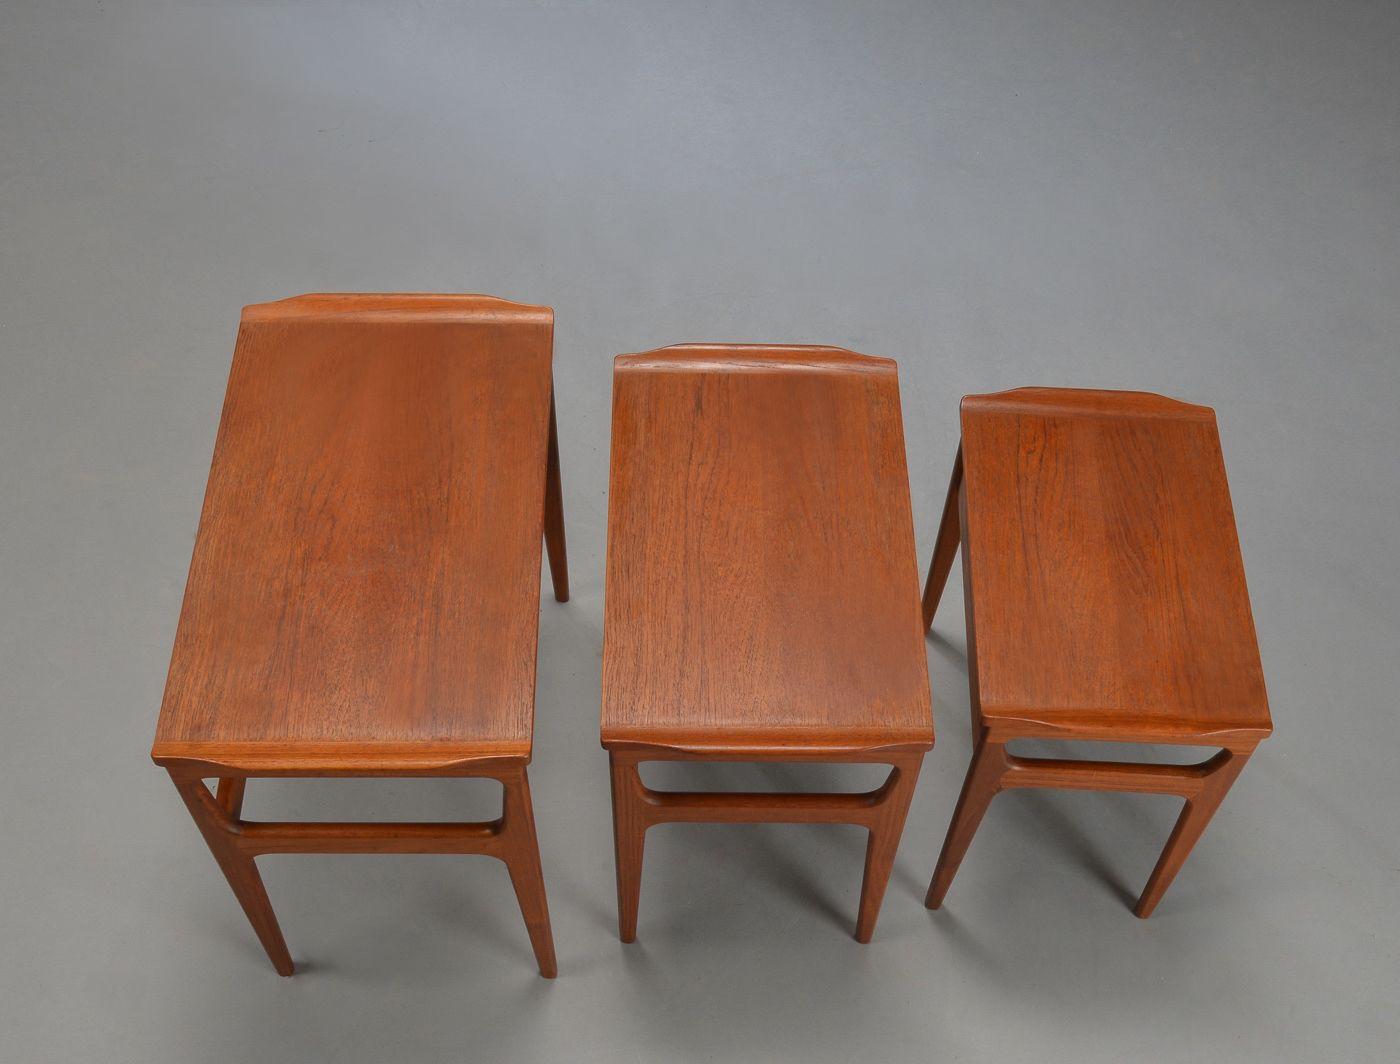 Wonderful image of Danish Mid Century Teak Nesting Tables from Heltborg Møbler for Domus  with #AE521D color and 1400x1064 pixels